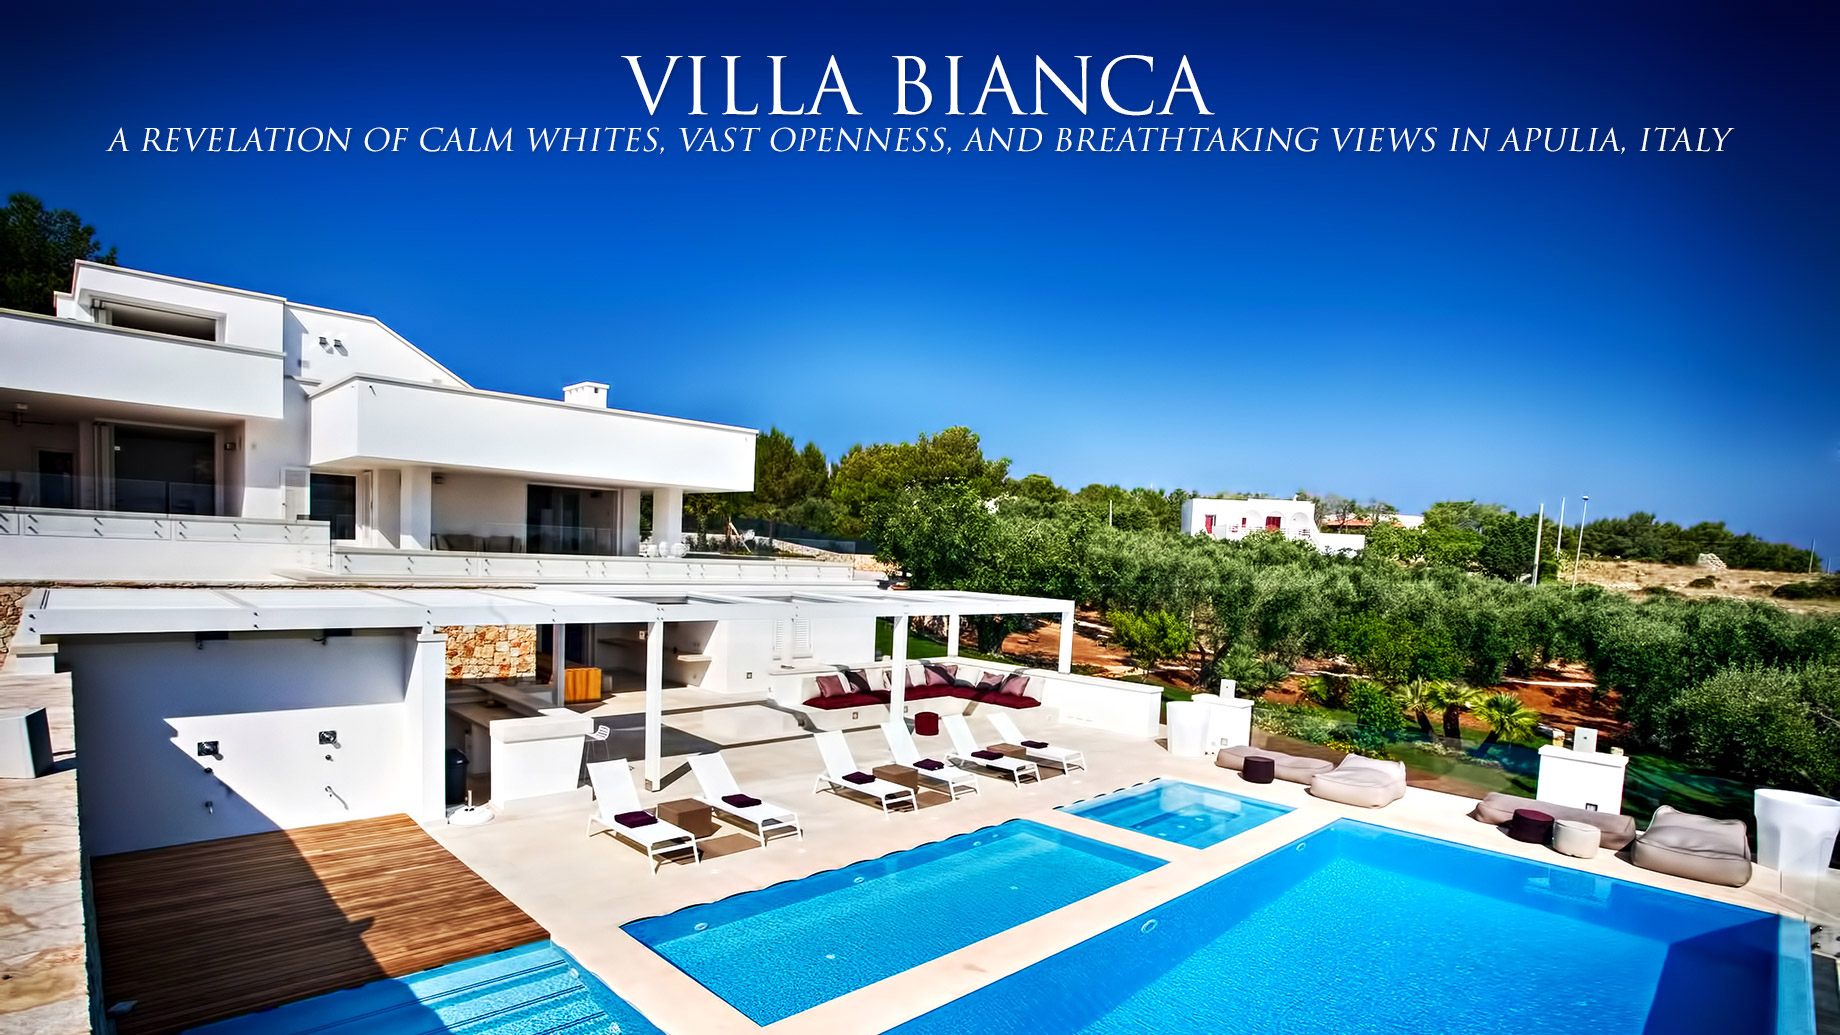 Villa Bianca - A Revelation of Calm Whites, Vast Openness, and Breathtaking Views in Apulia, Italy